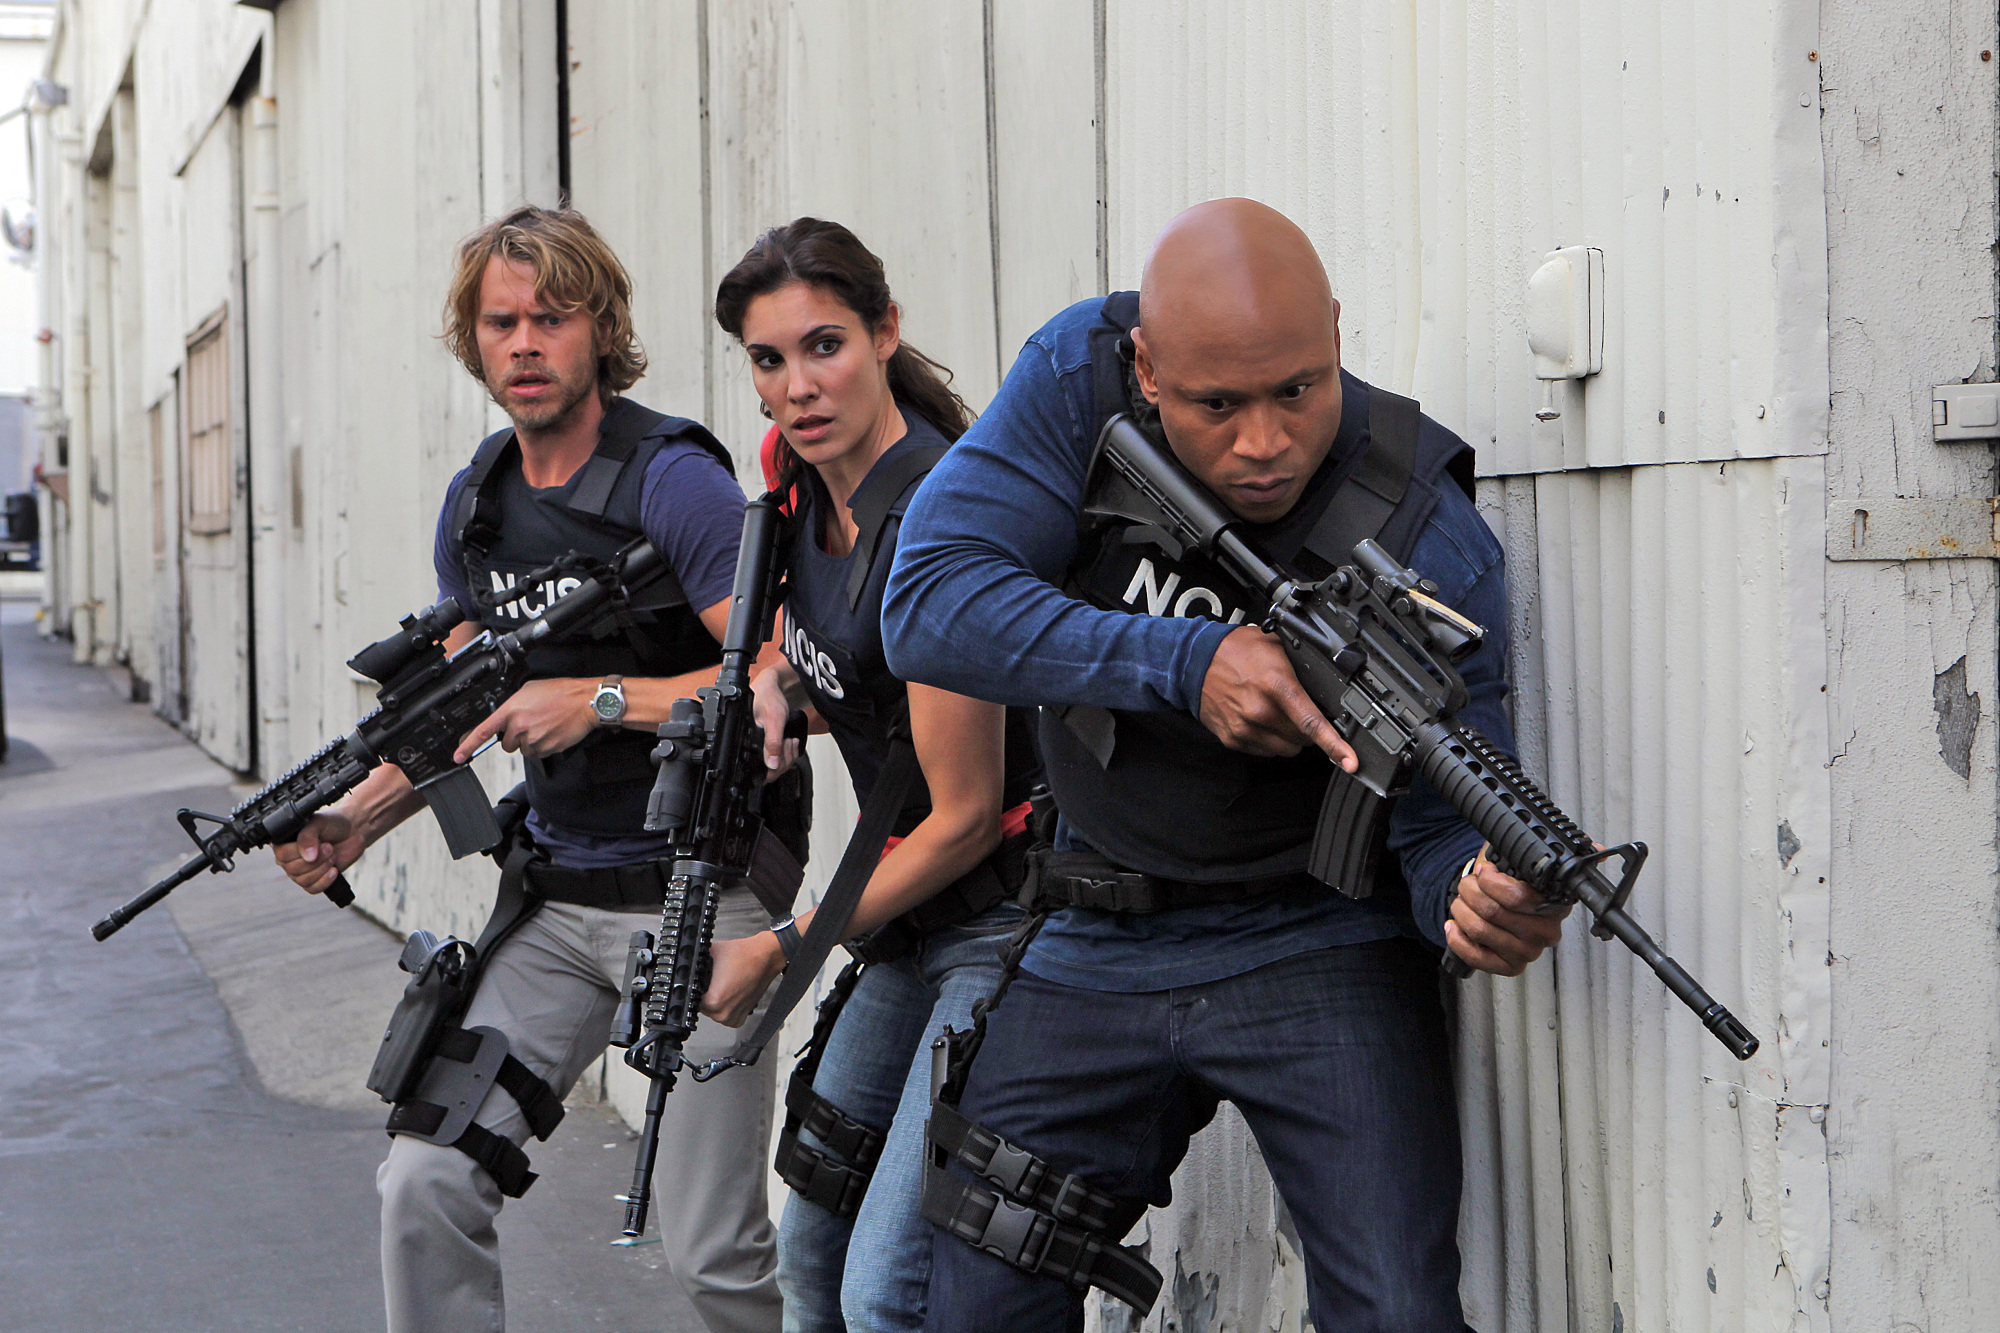 NCIS: LA Tracks a Chechen Terrorist Cell